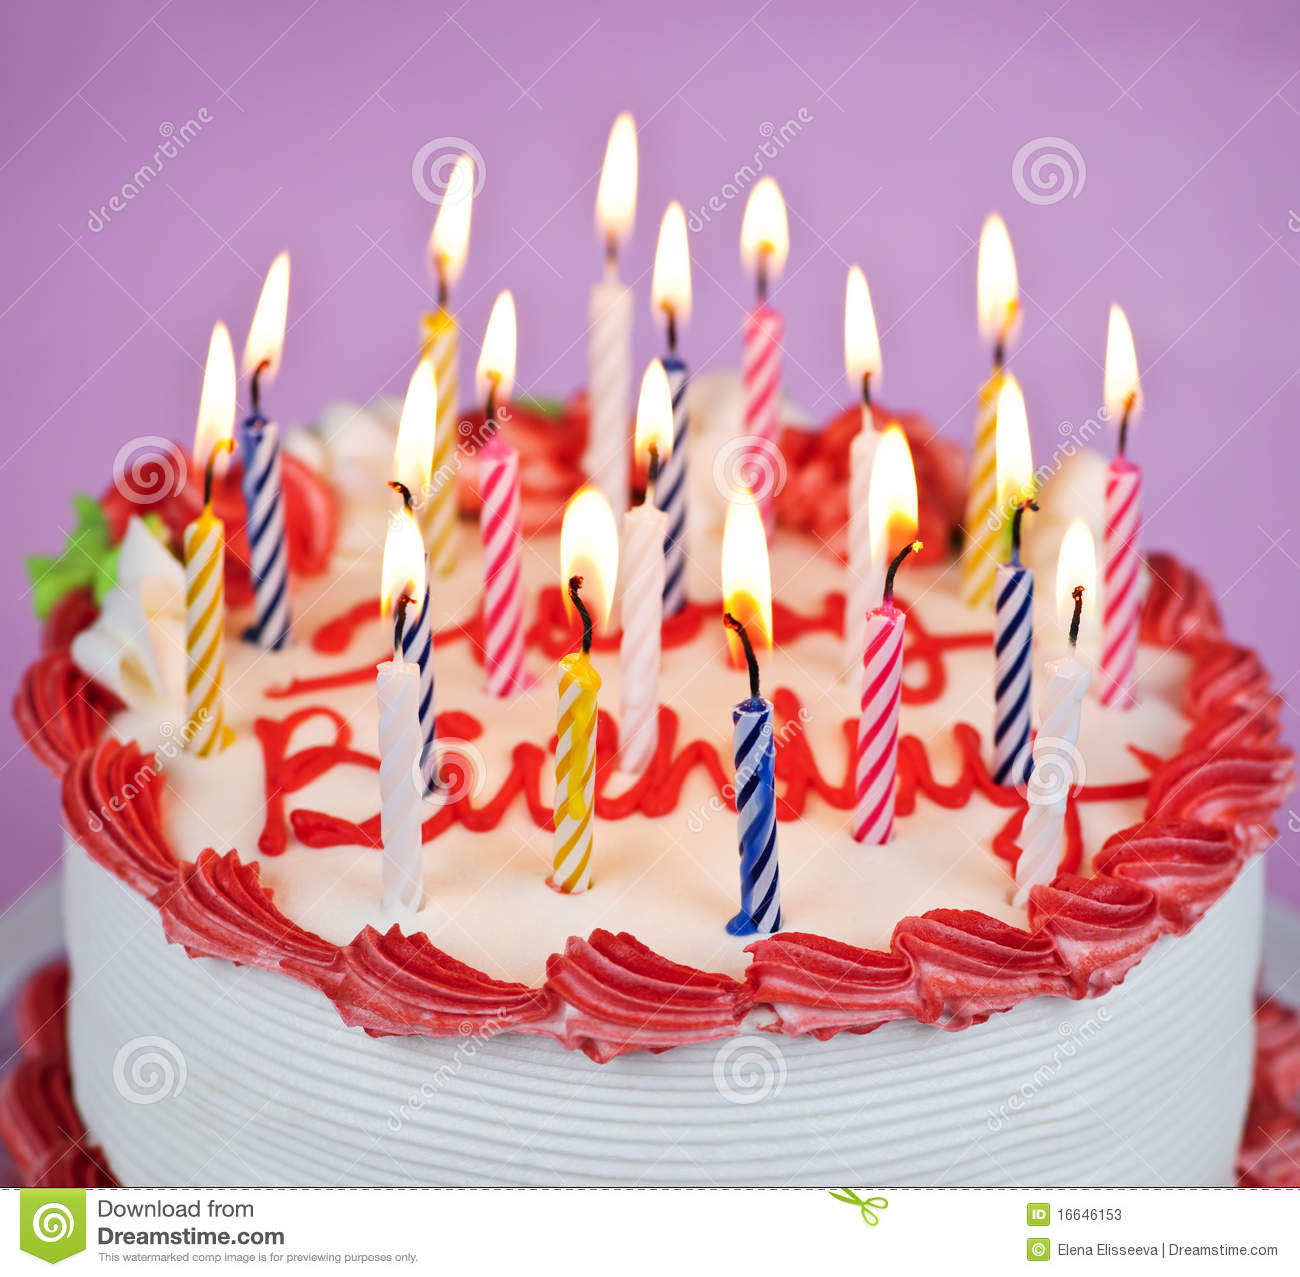 Birthday Cake With Lit Candles Images : Birthday Cake With Lit Candles Stock Photos - Image: 16646153